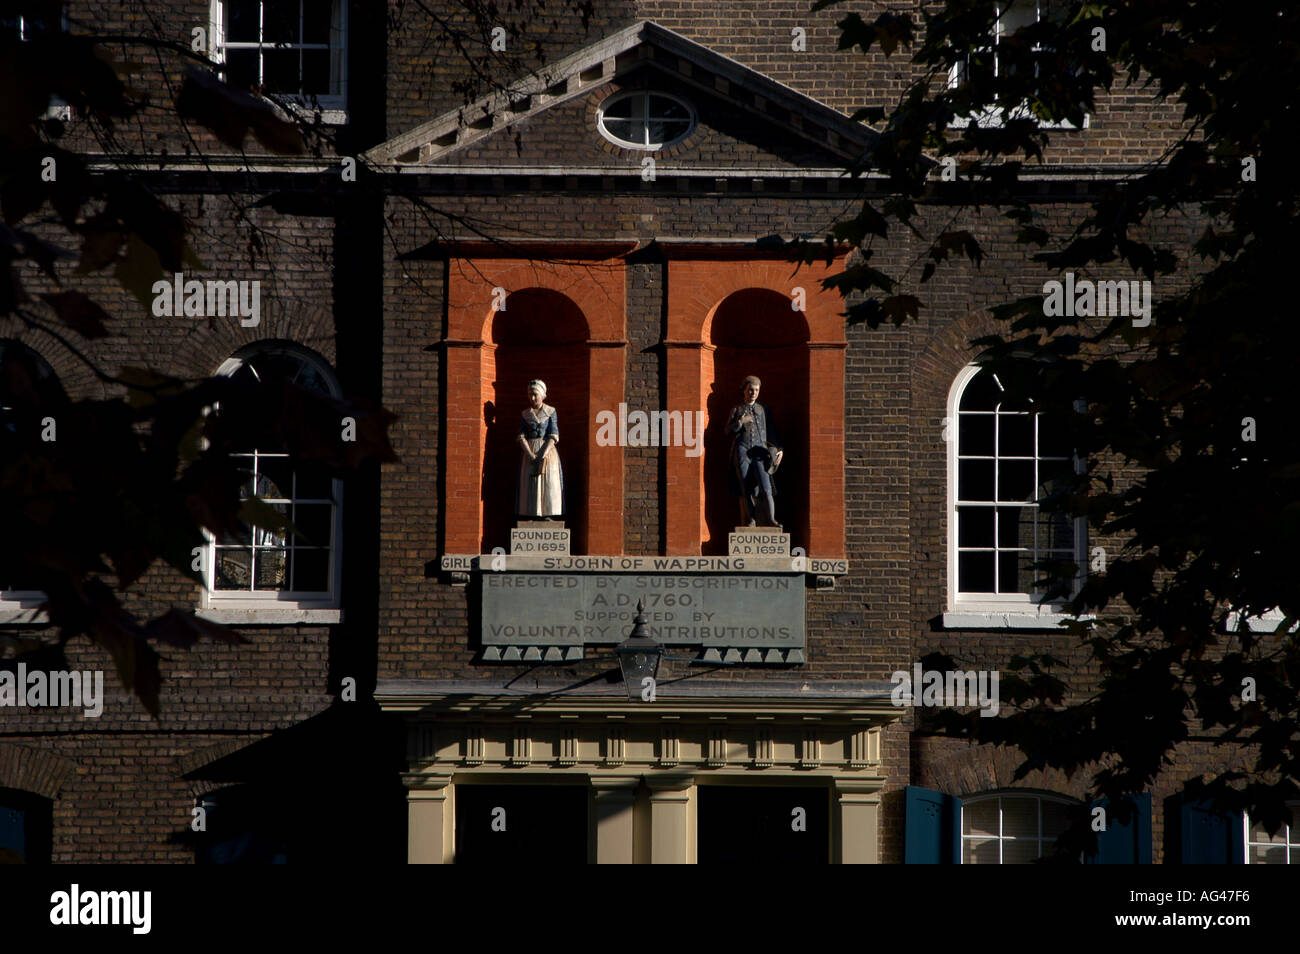 HISTORY ST JOHN SCHHOL OLD 1695 FOUNDED EDUCATION STATUES REFORM BOY GIRL WAPPING - Stock Image